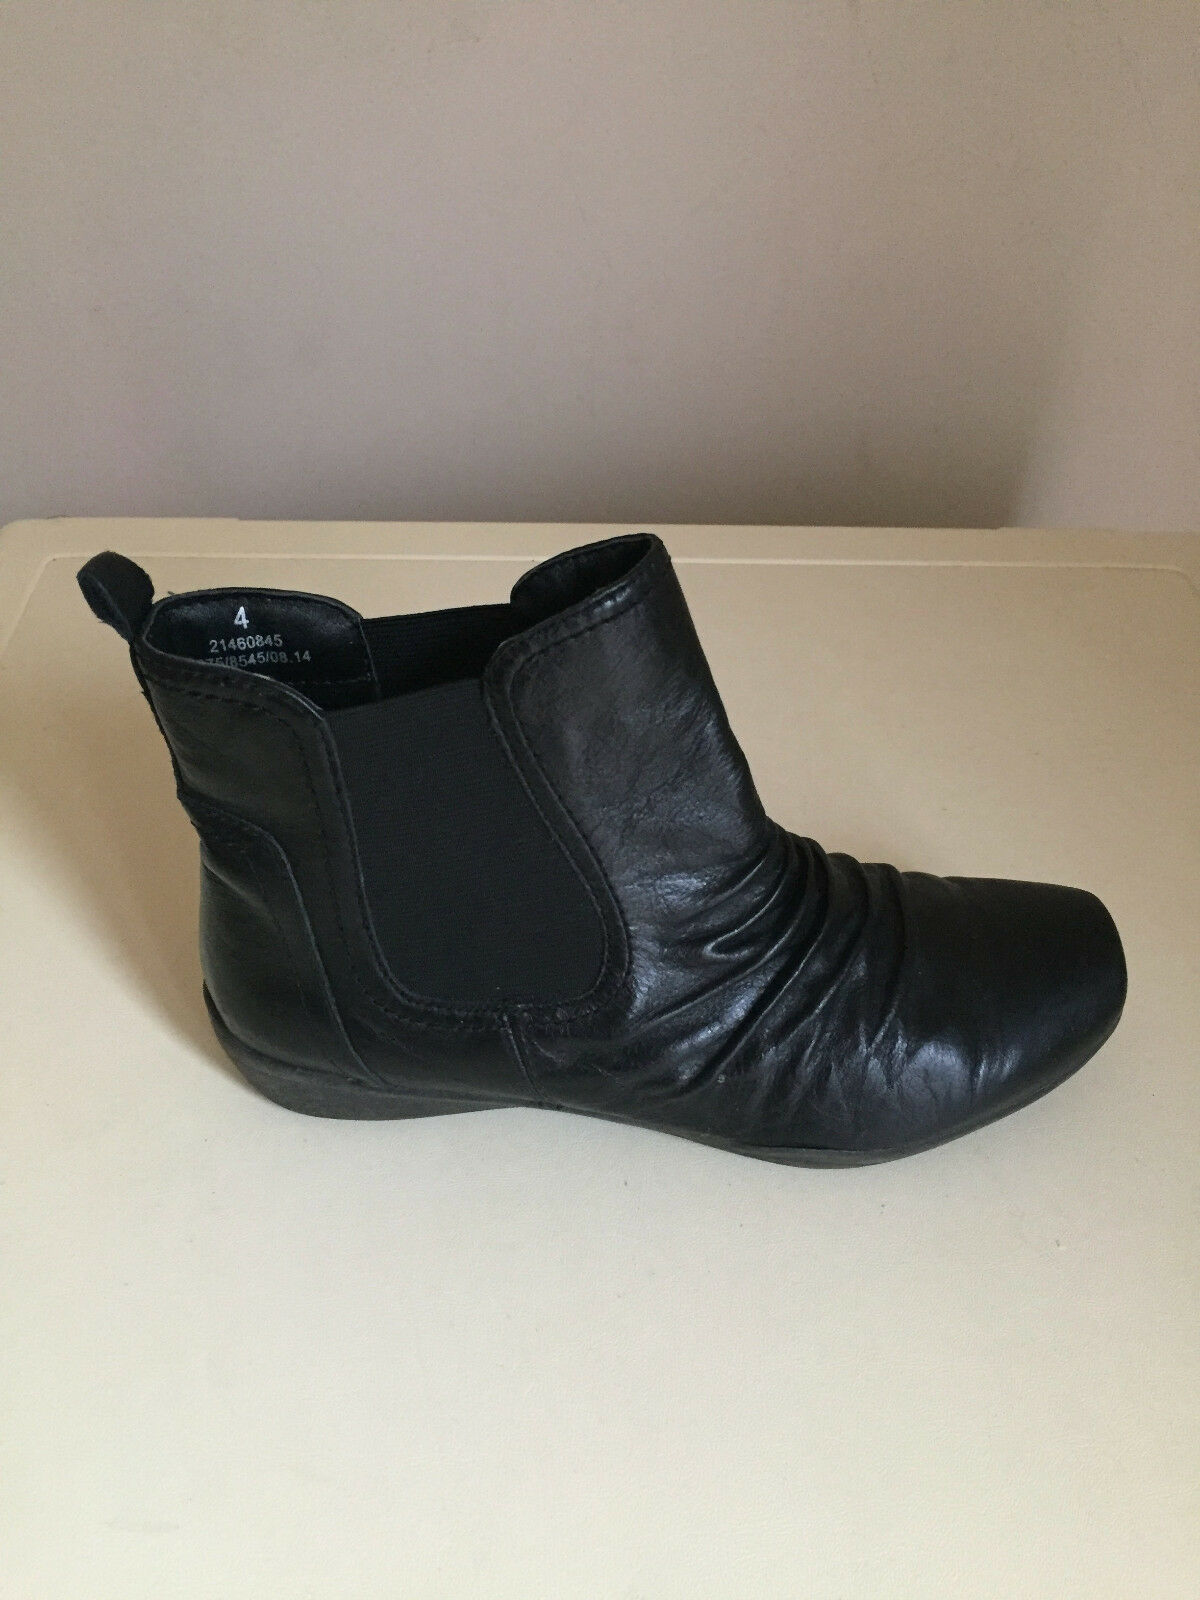 WOMEN ANKE LEATHER FOOTGLOVE BLACK FOOTGLOVE LEATHER Stiefel SIZE 4 MARKS & SPENCER 19f48d